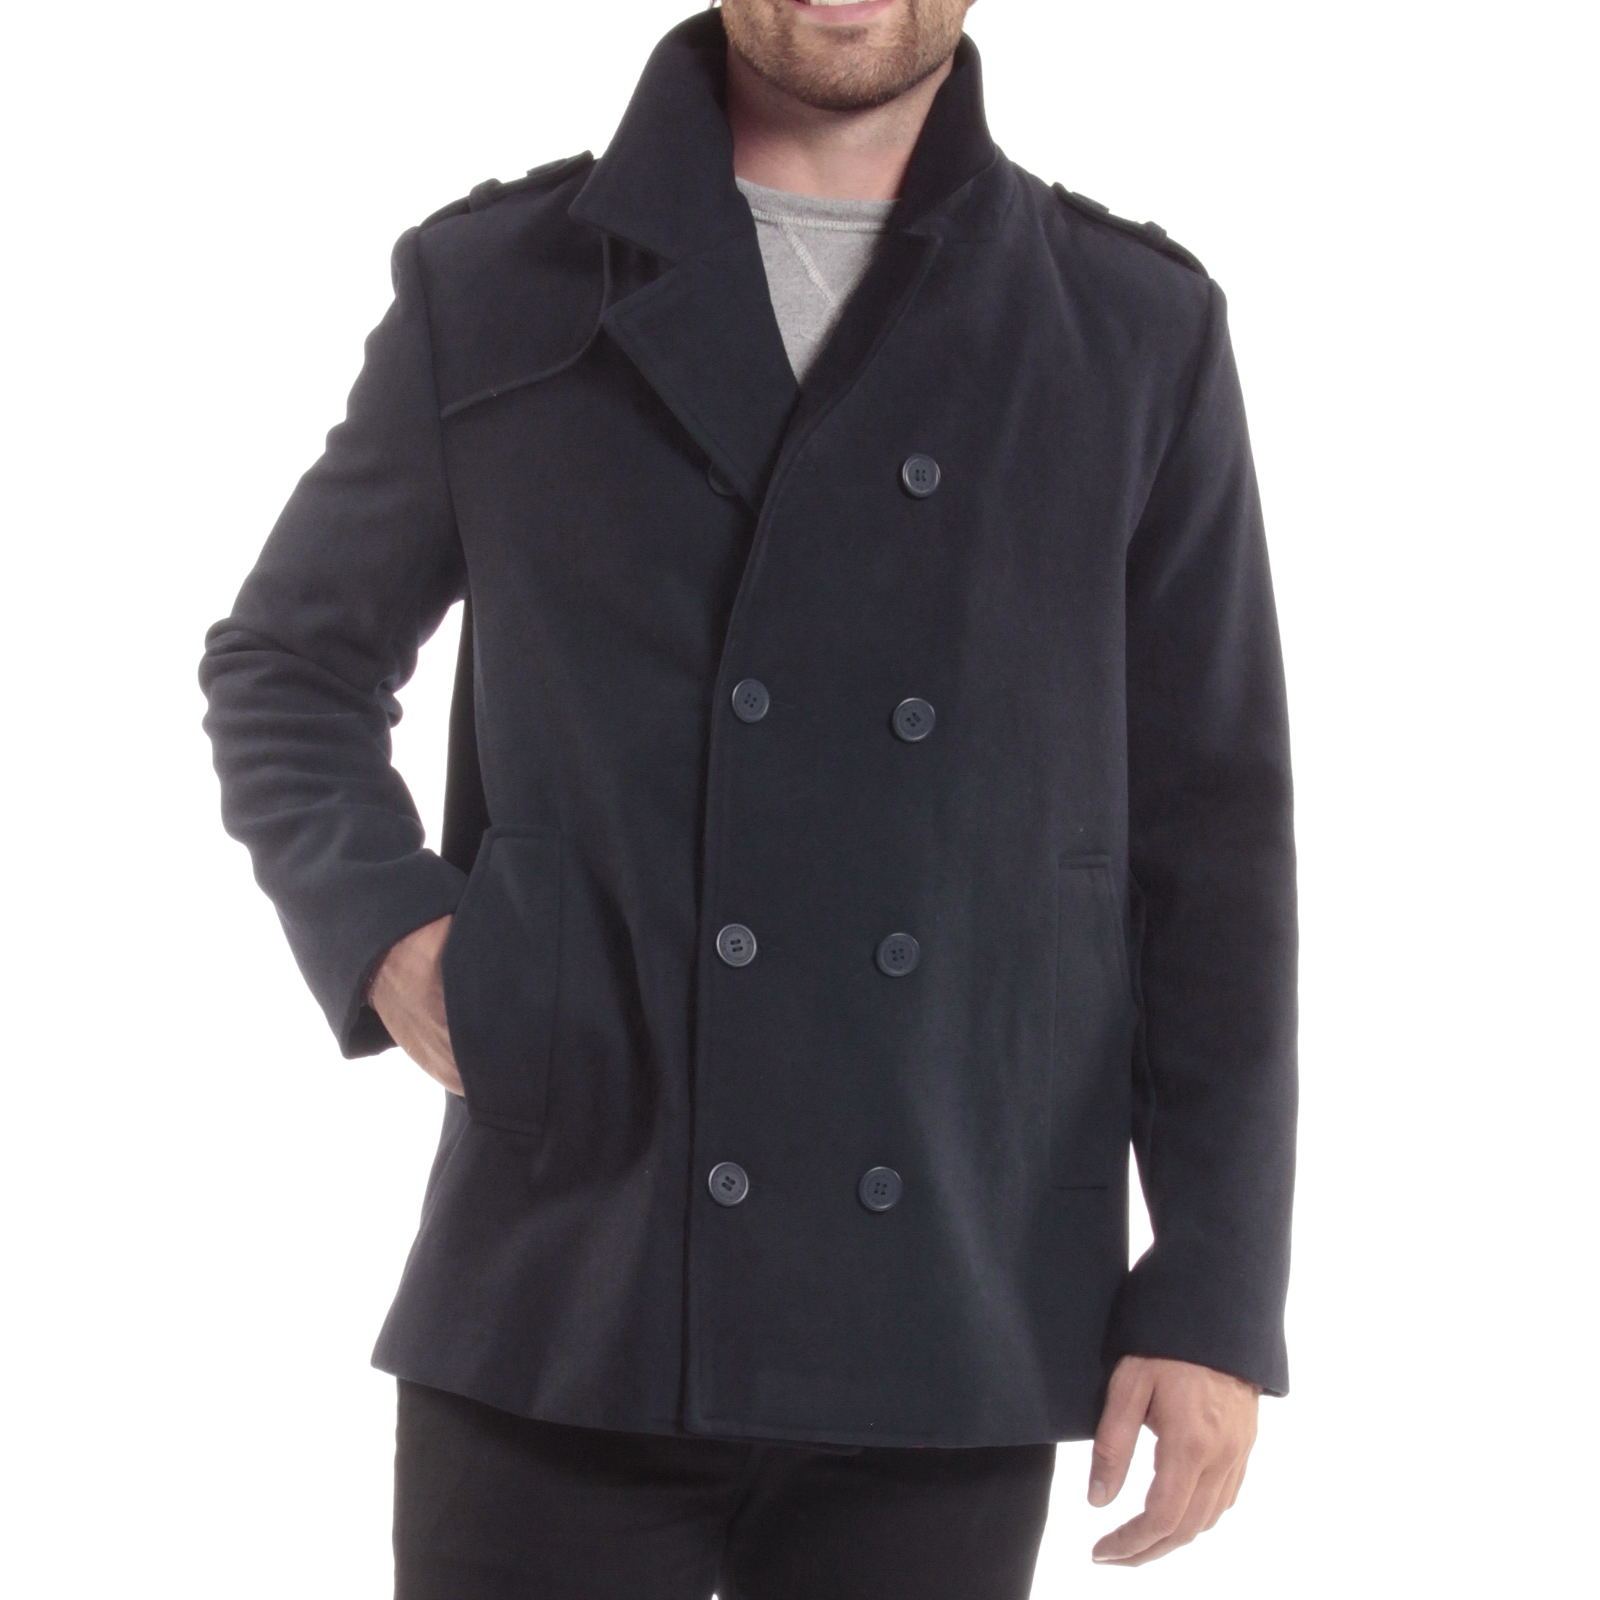 f78e5ee1c49 Alpine Swiss Jake Mens Pea Coat Wool Blend Double Breasted Dress ...